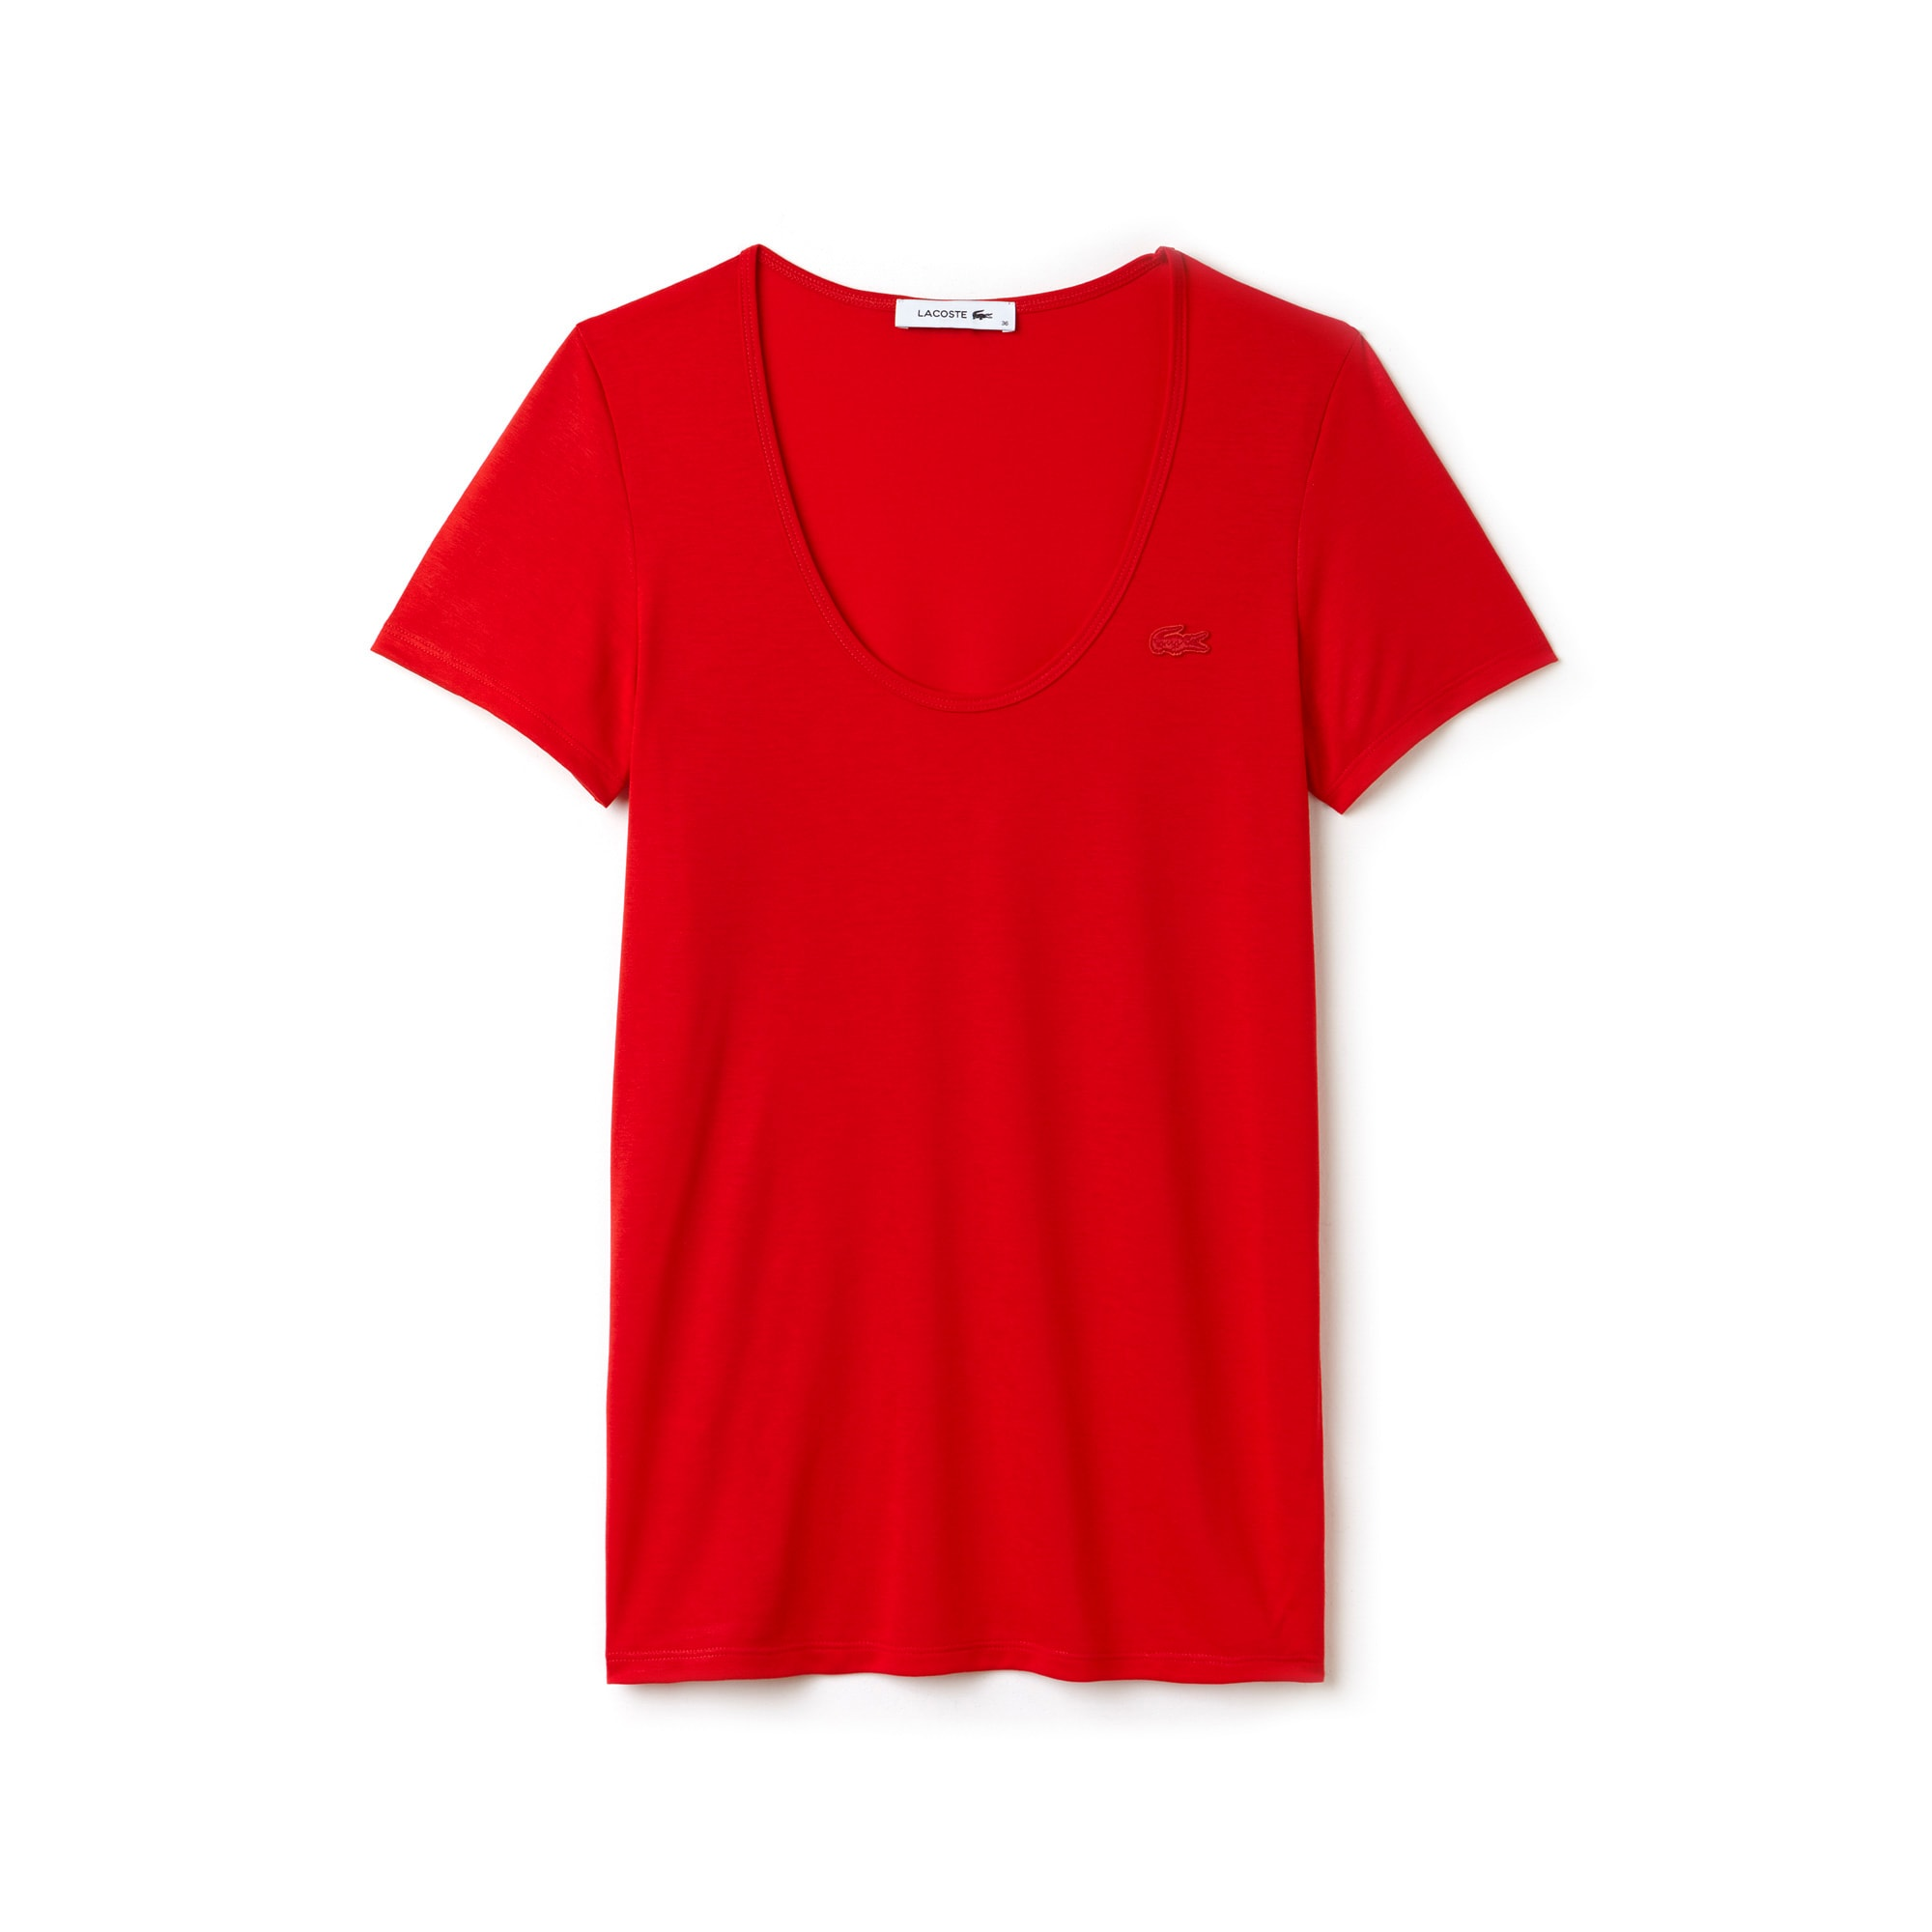 Women's Scoop Neck Flowing Jersey Blend T-shirt